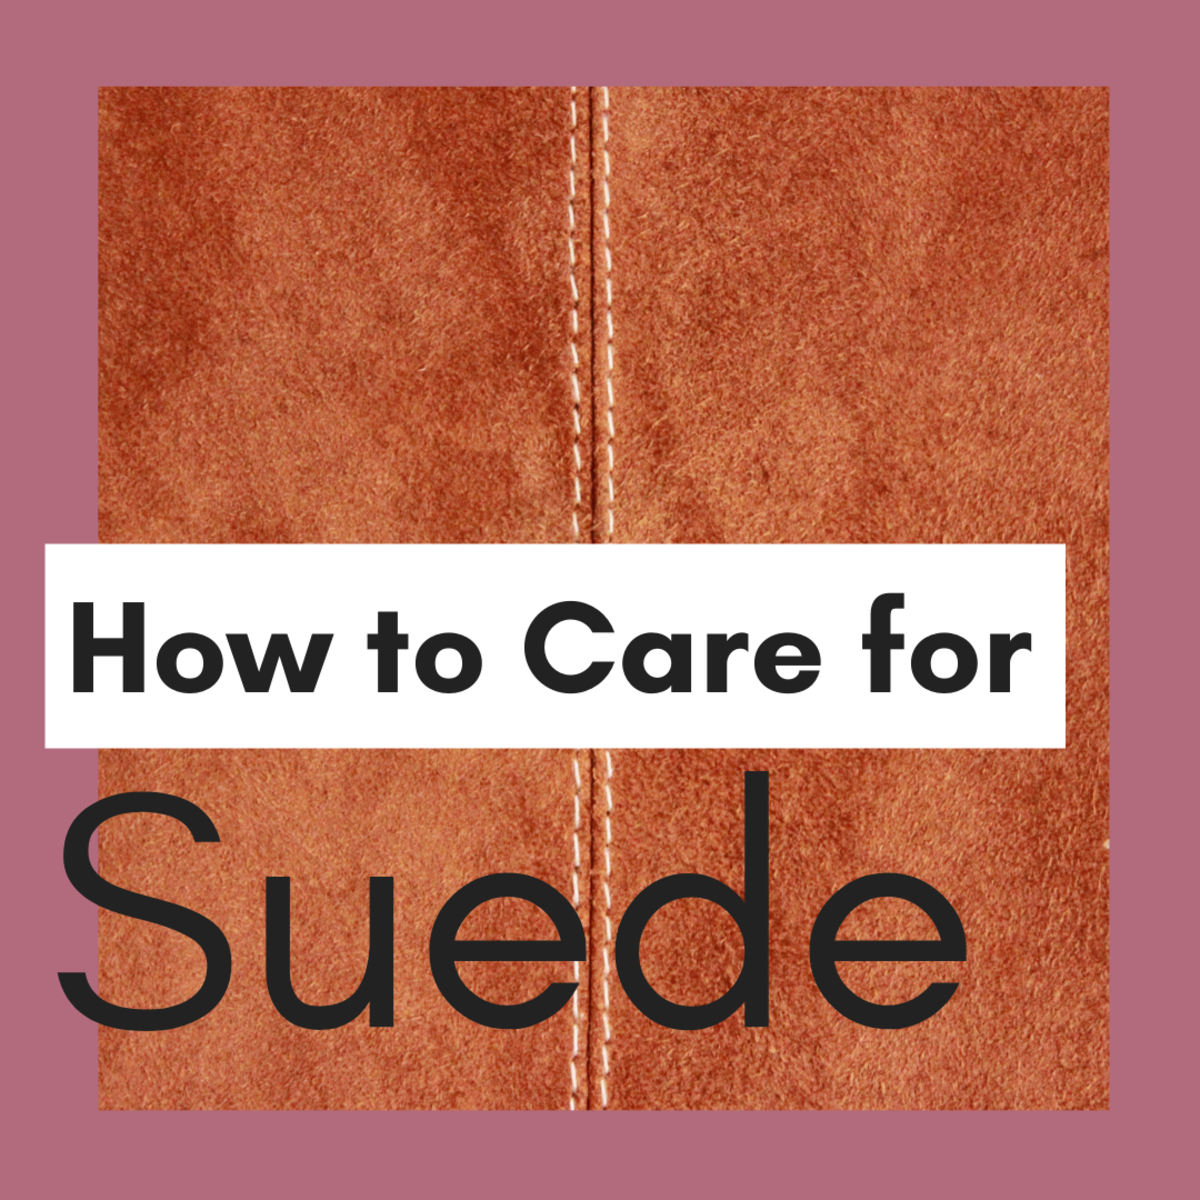 How to Clean and Care for Suede: Easy Instructions and Tips